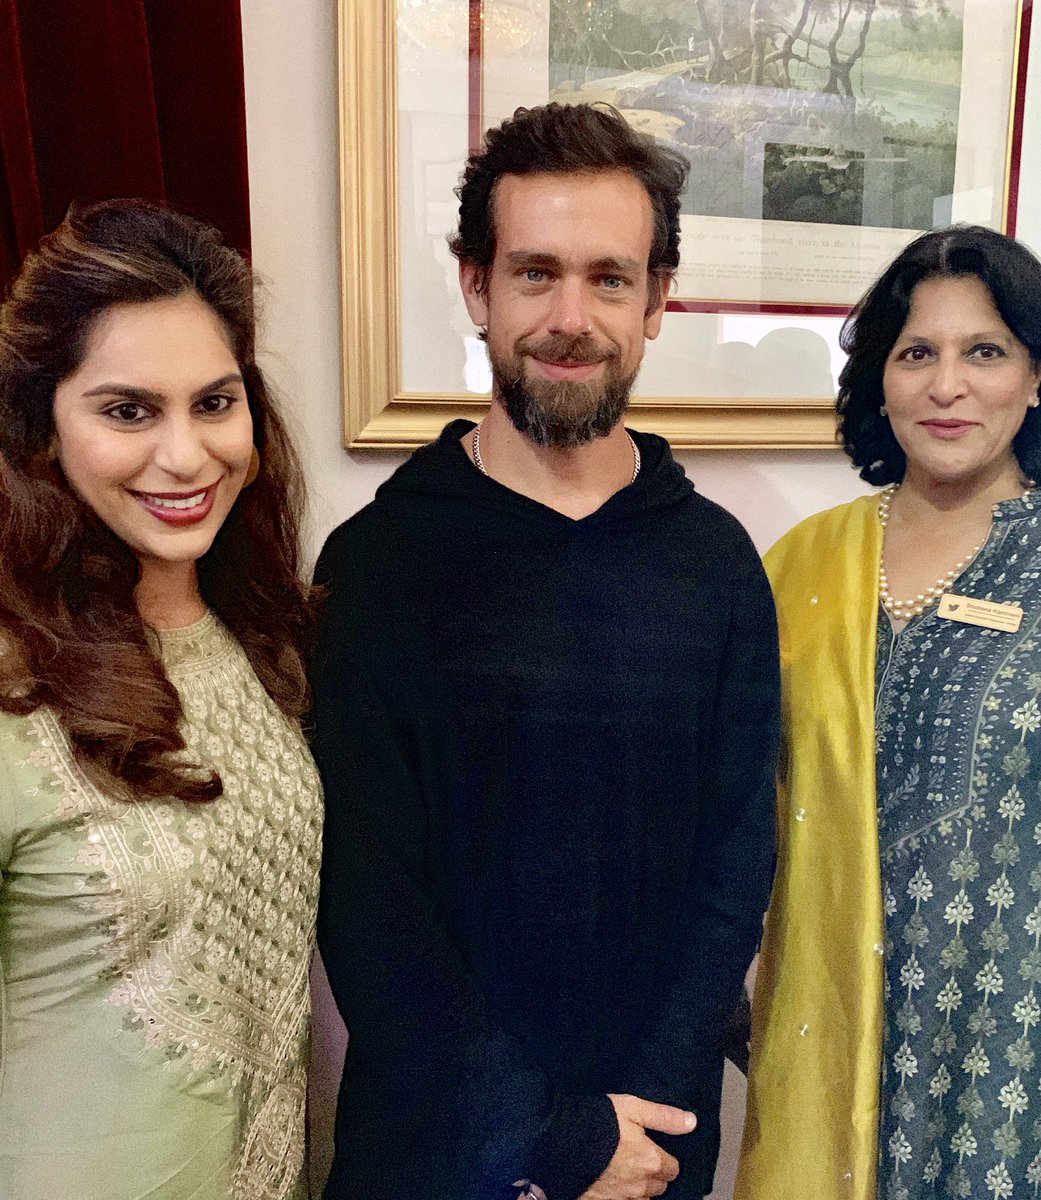 Nearly 19 years ago, my wife, who had an undiagnosed heart condition, fell and hit her head on her desk at work. Upasana dinner with Twitter Boss Jack Dorsey! & Ram Charan ...